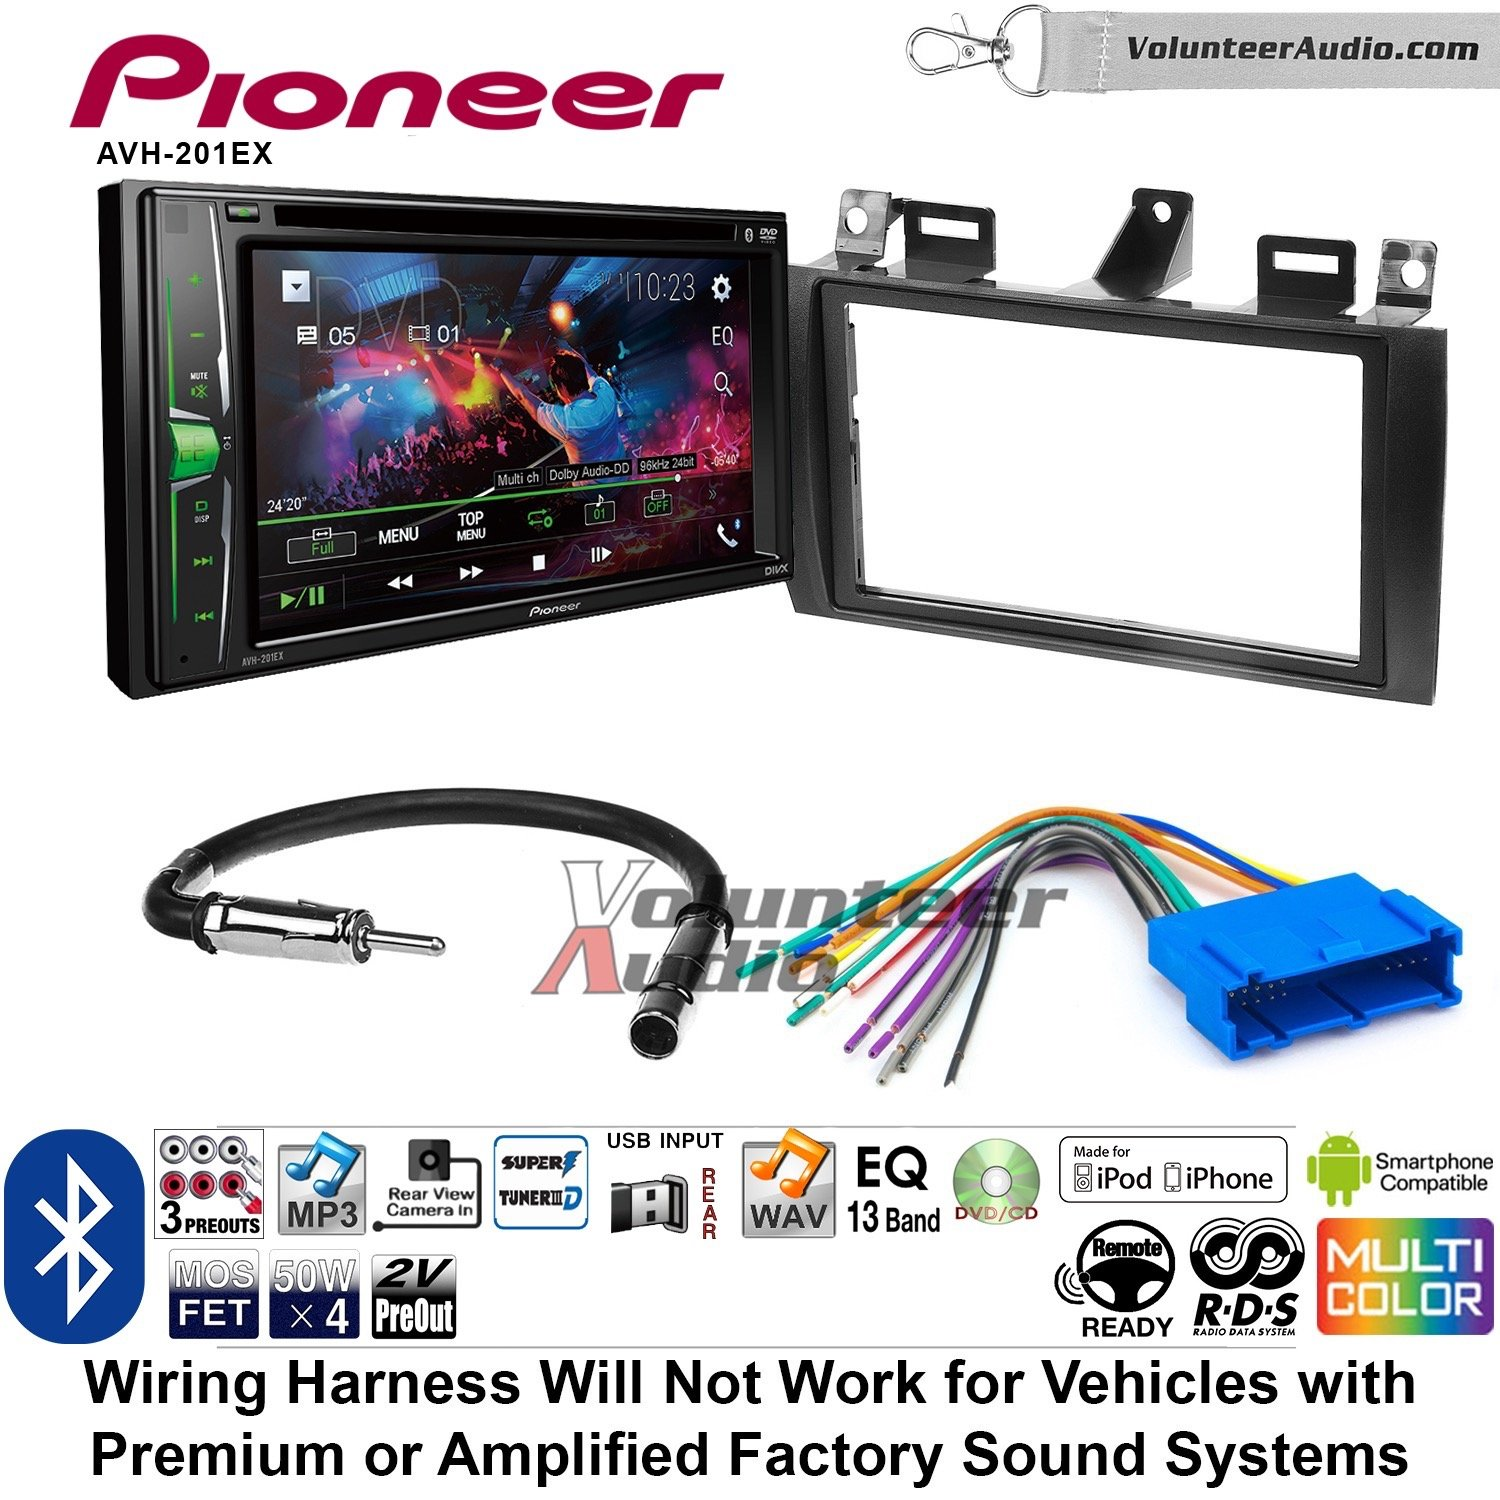 Volunteer Audio Pioneer AVH-201EX Double Din Radio Install Kit with CD Player Bluetooth USB/AUX Fits 2000-2005 Cadillac Deville, 1996-2004 Seville